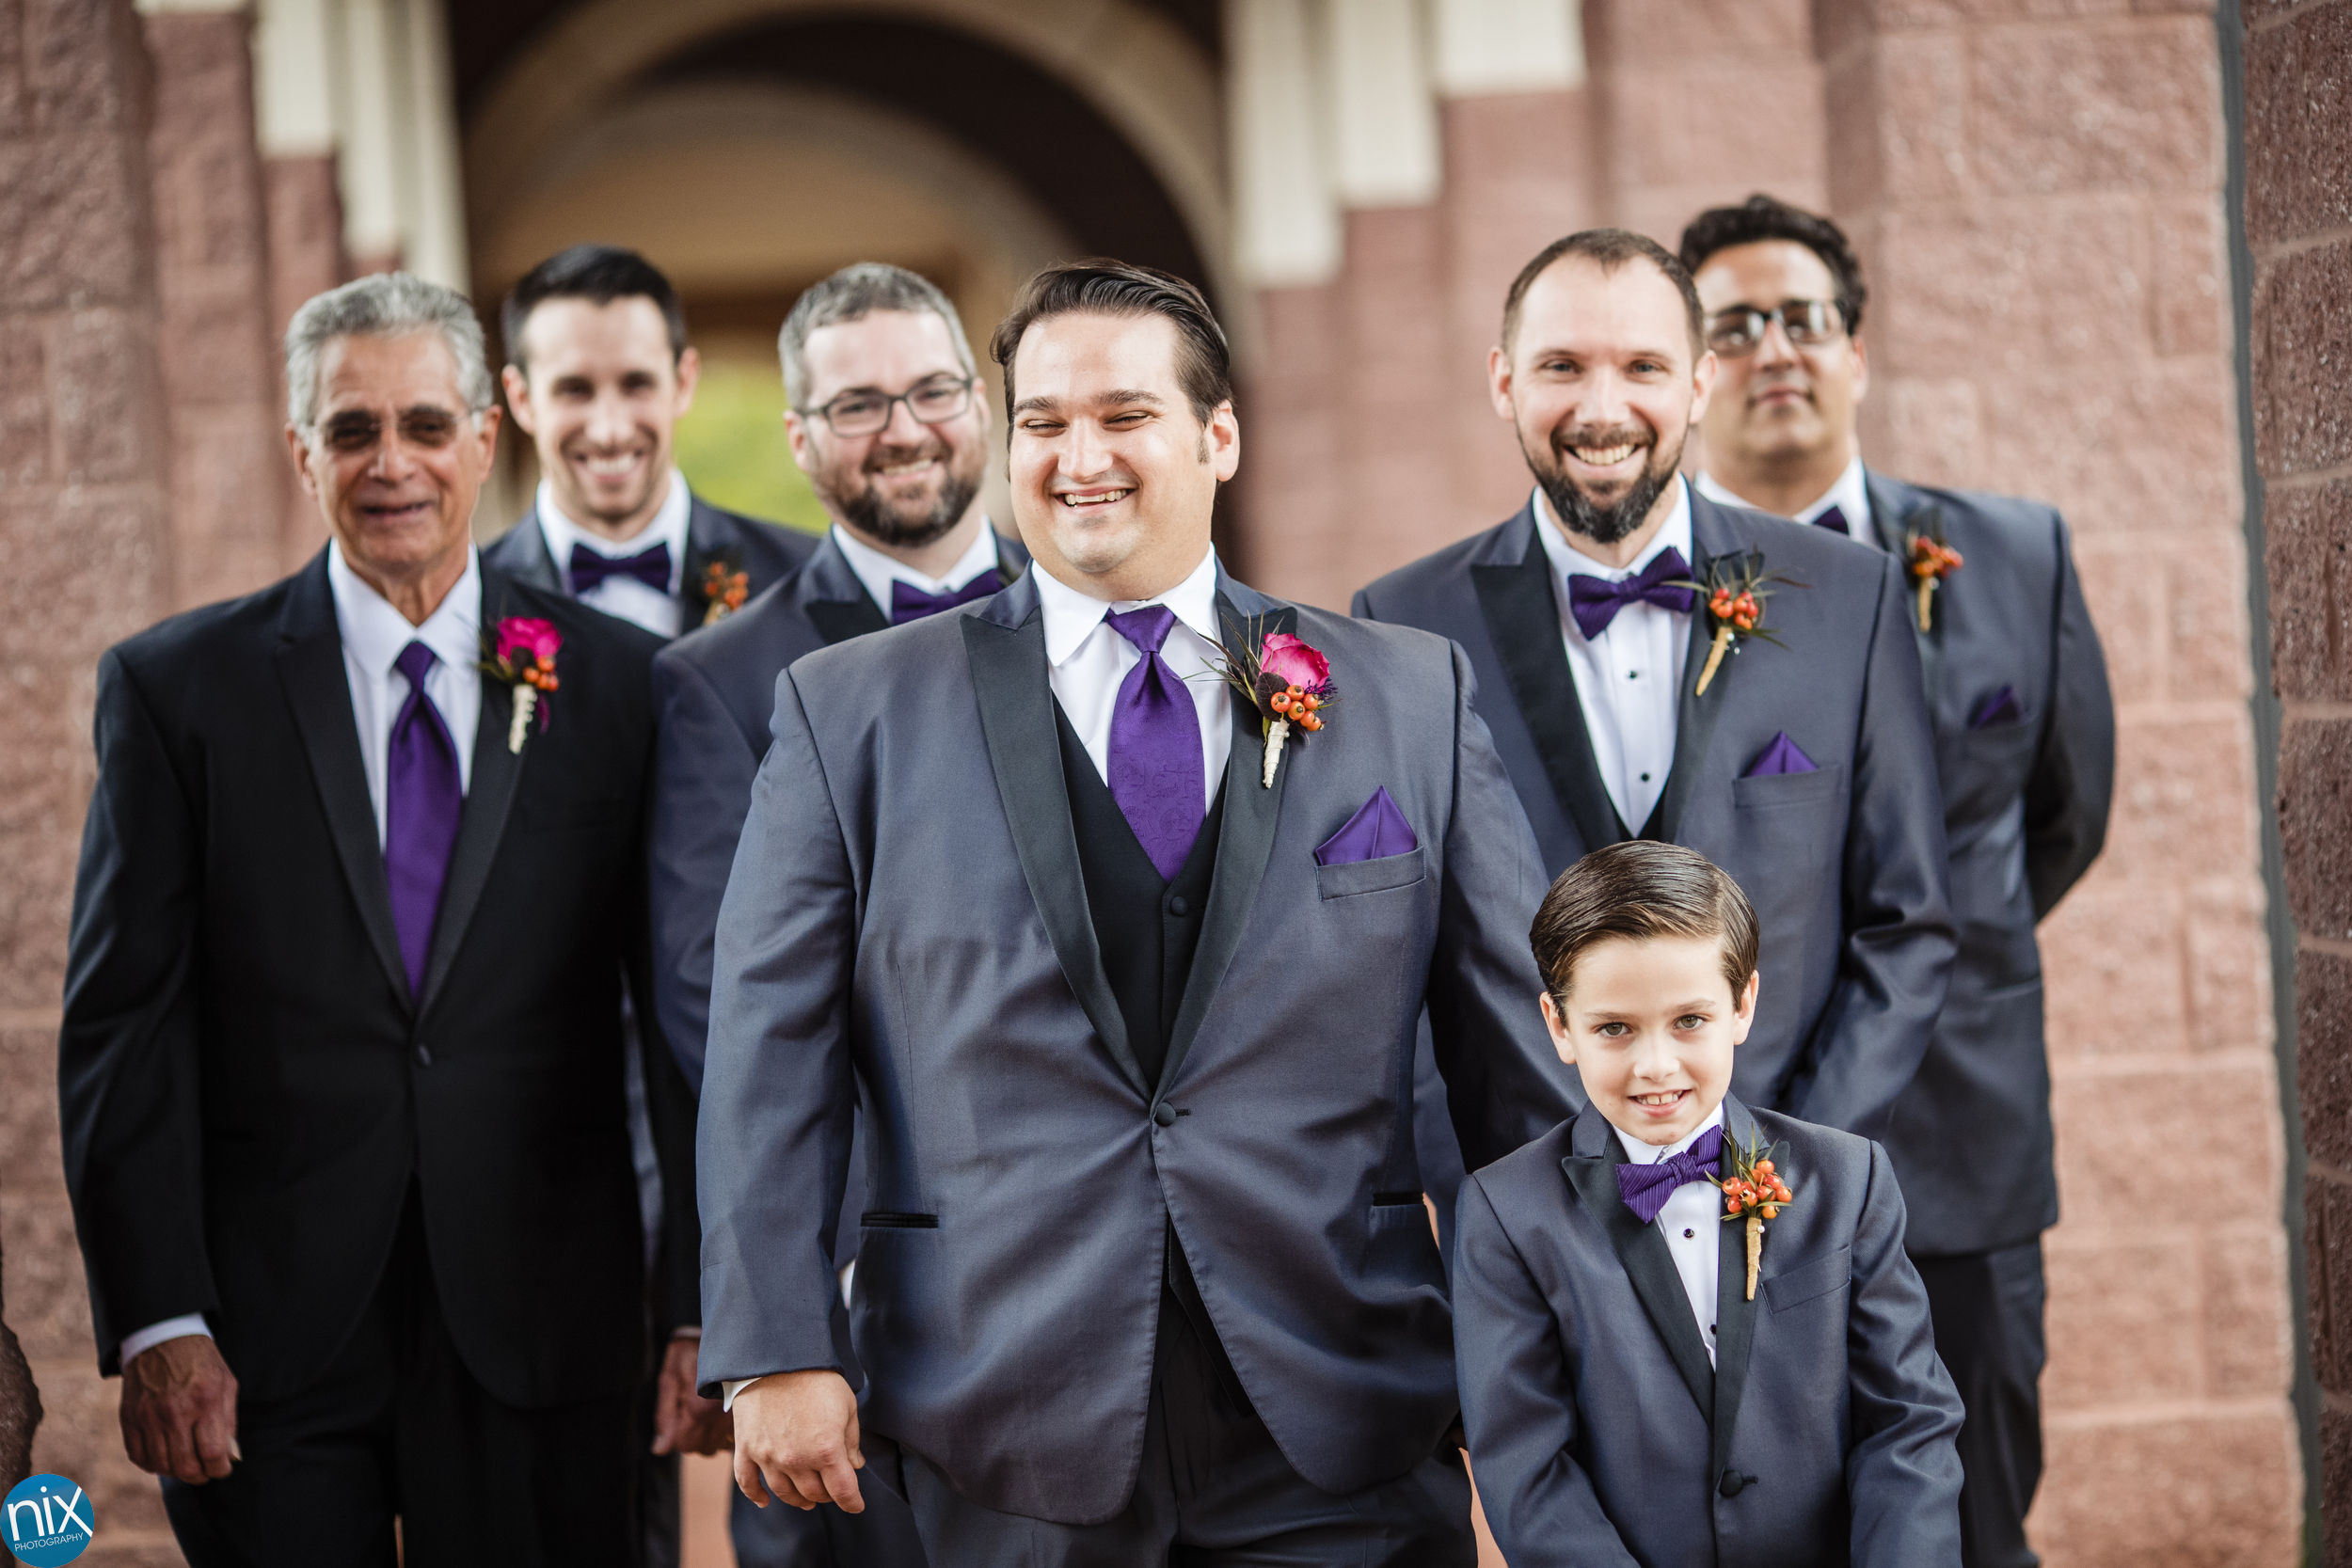 St Philip Neri Catholic Church groom and groomsmen.jpg